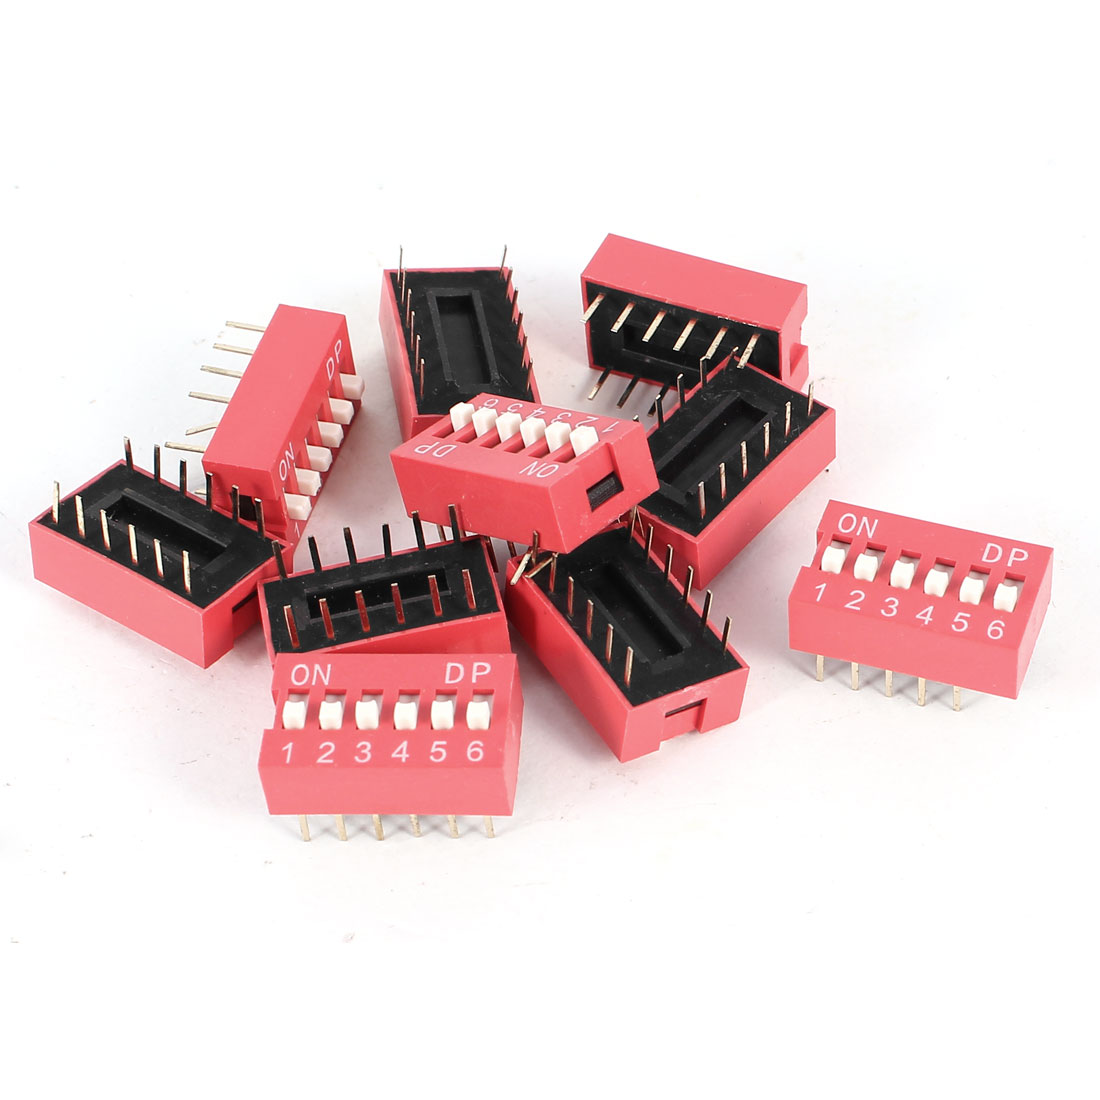 10 Pcs Red 2.54mm Pitch 12Pins 6 Positions Ways PCB Mount Slide Type DIP Switch